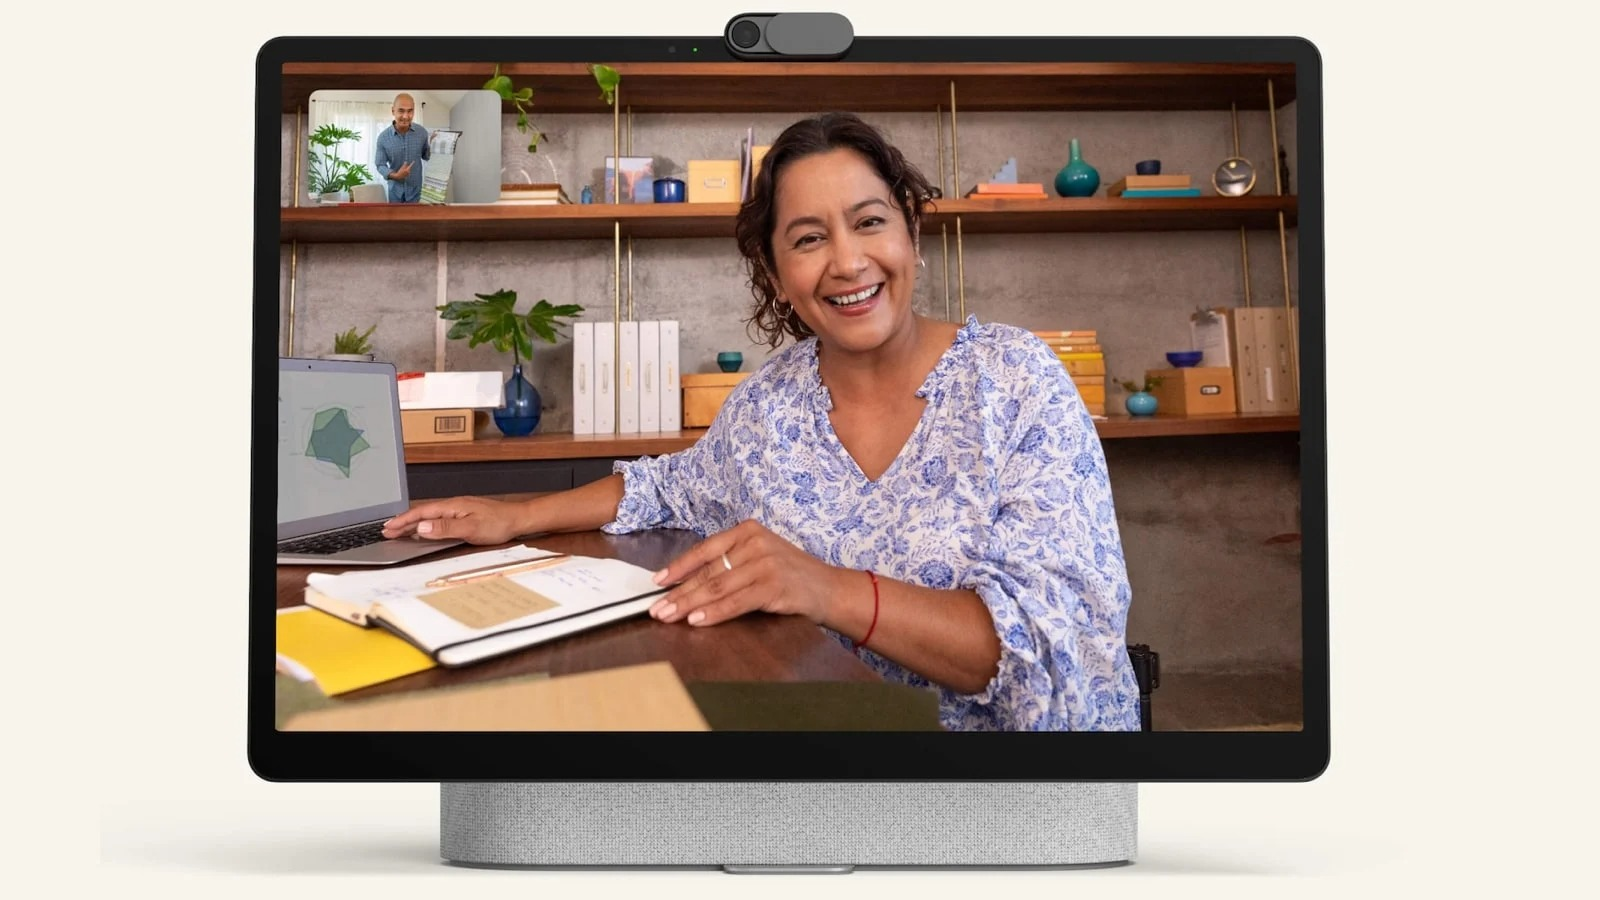 Are the new Facebook Portal devices any better for video calling?